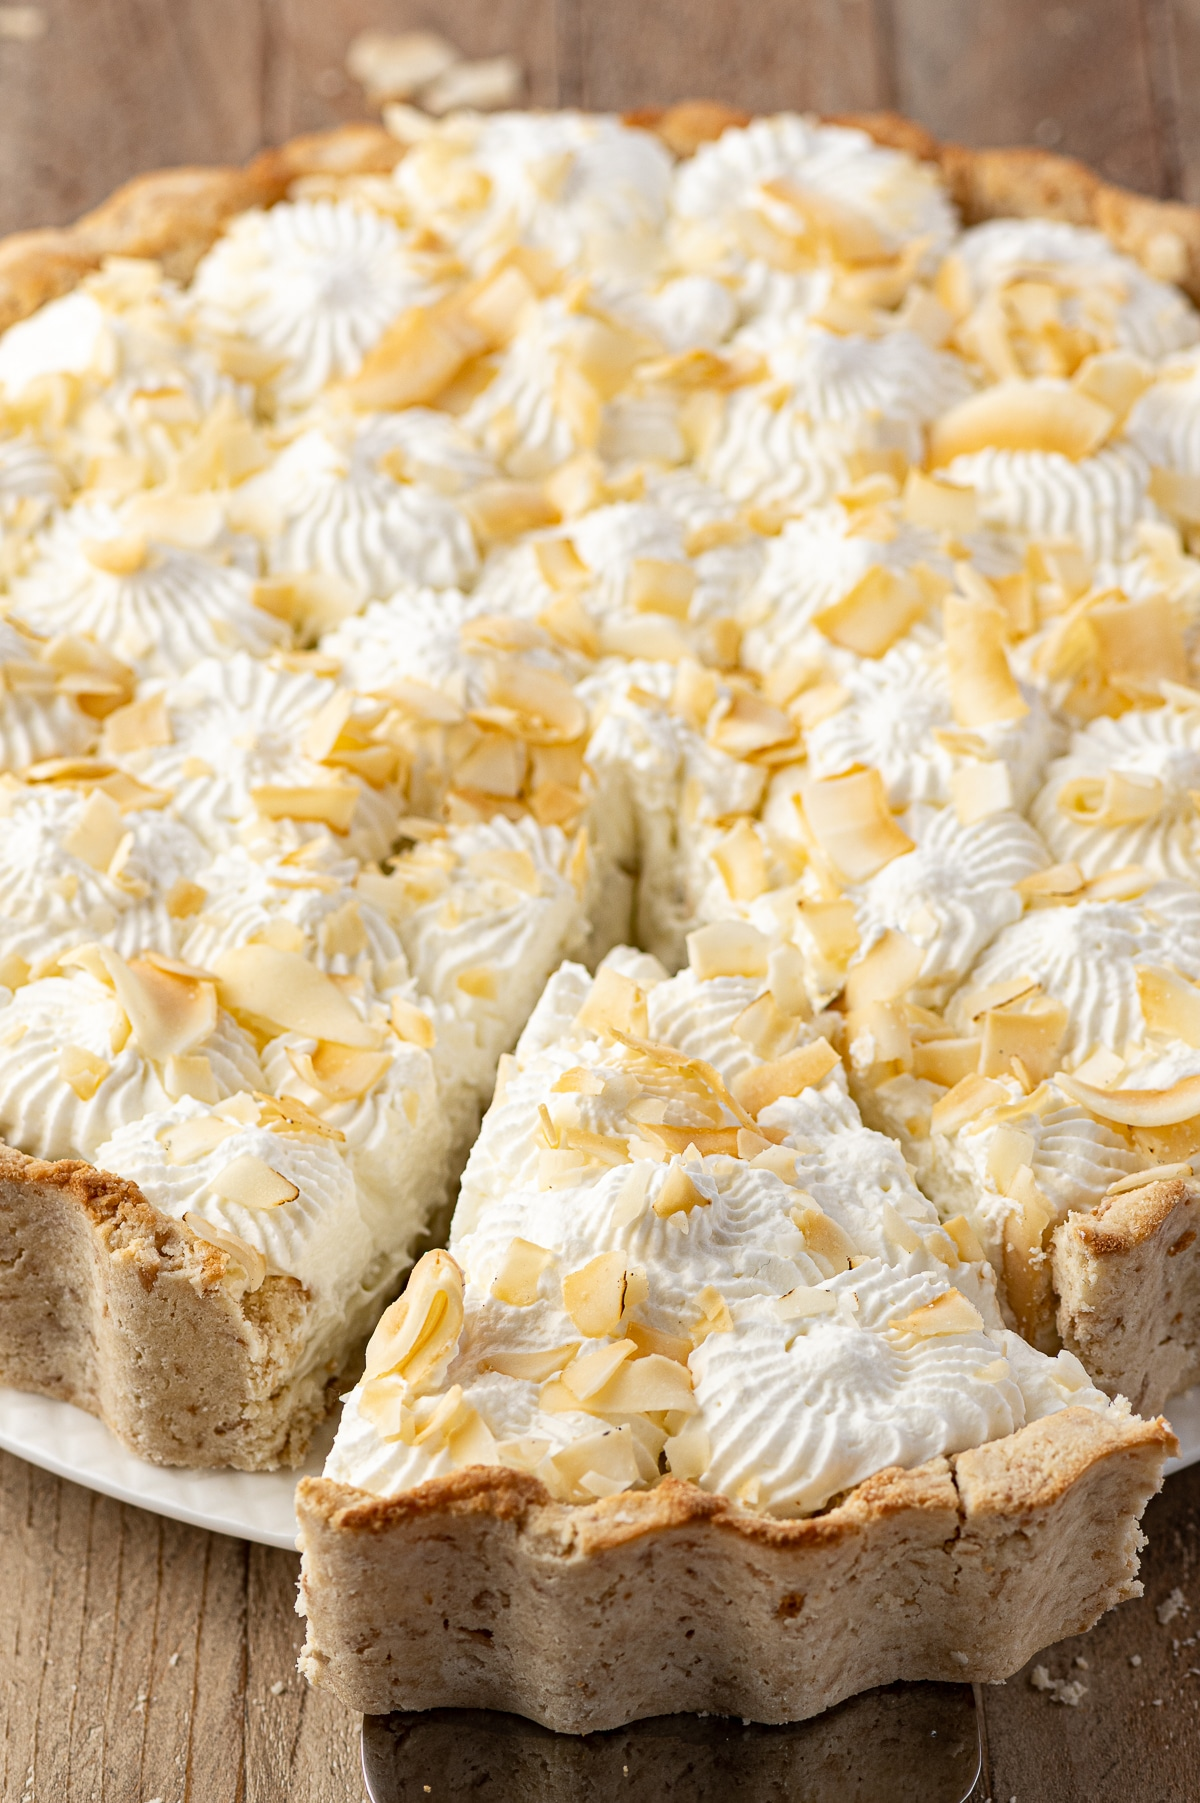 Coconut cream pie with a slice being removed on a rustic wooden table.